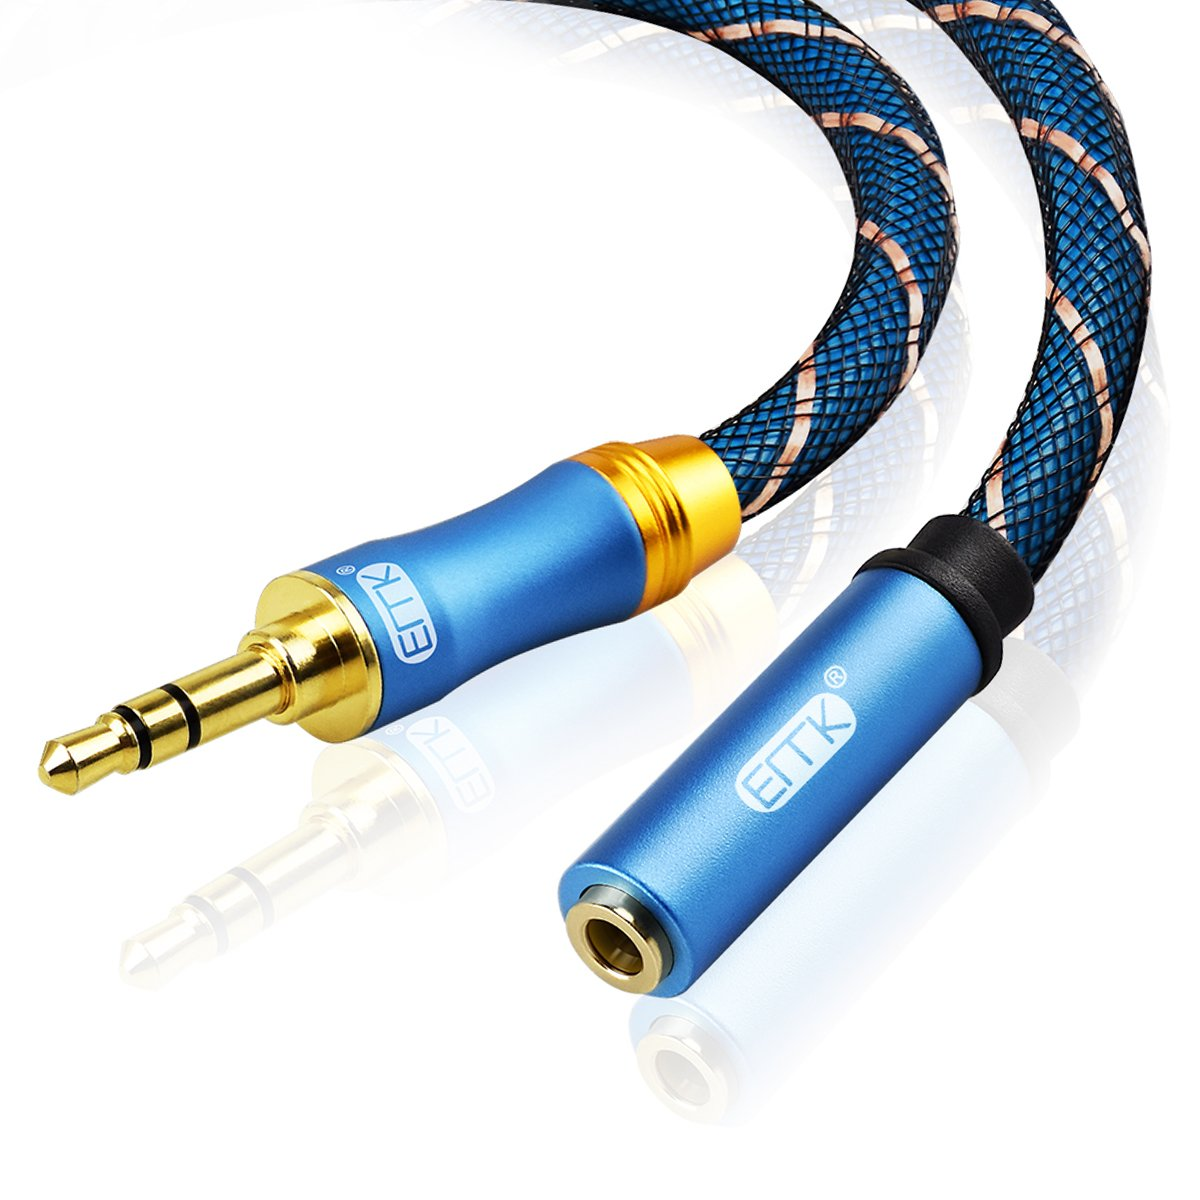 EMK 3.5mm Aux Audio Cord Nylon Braided Aux Cord for Stereo Jack Cord for Phones, Headphones, Speakers, Tablets, PCs, MP3 Players and more-blue (10Ft/3Meters, Male to Female 3.5mm Aux Cord)